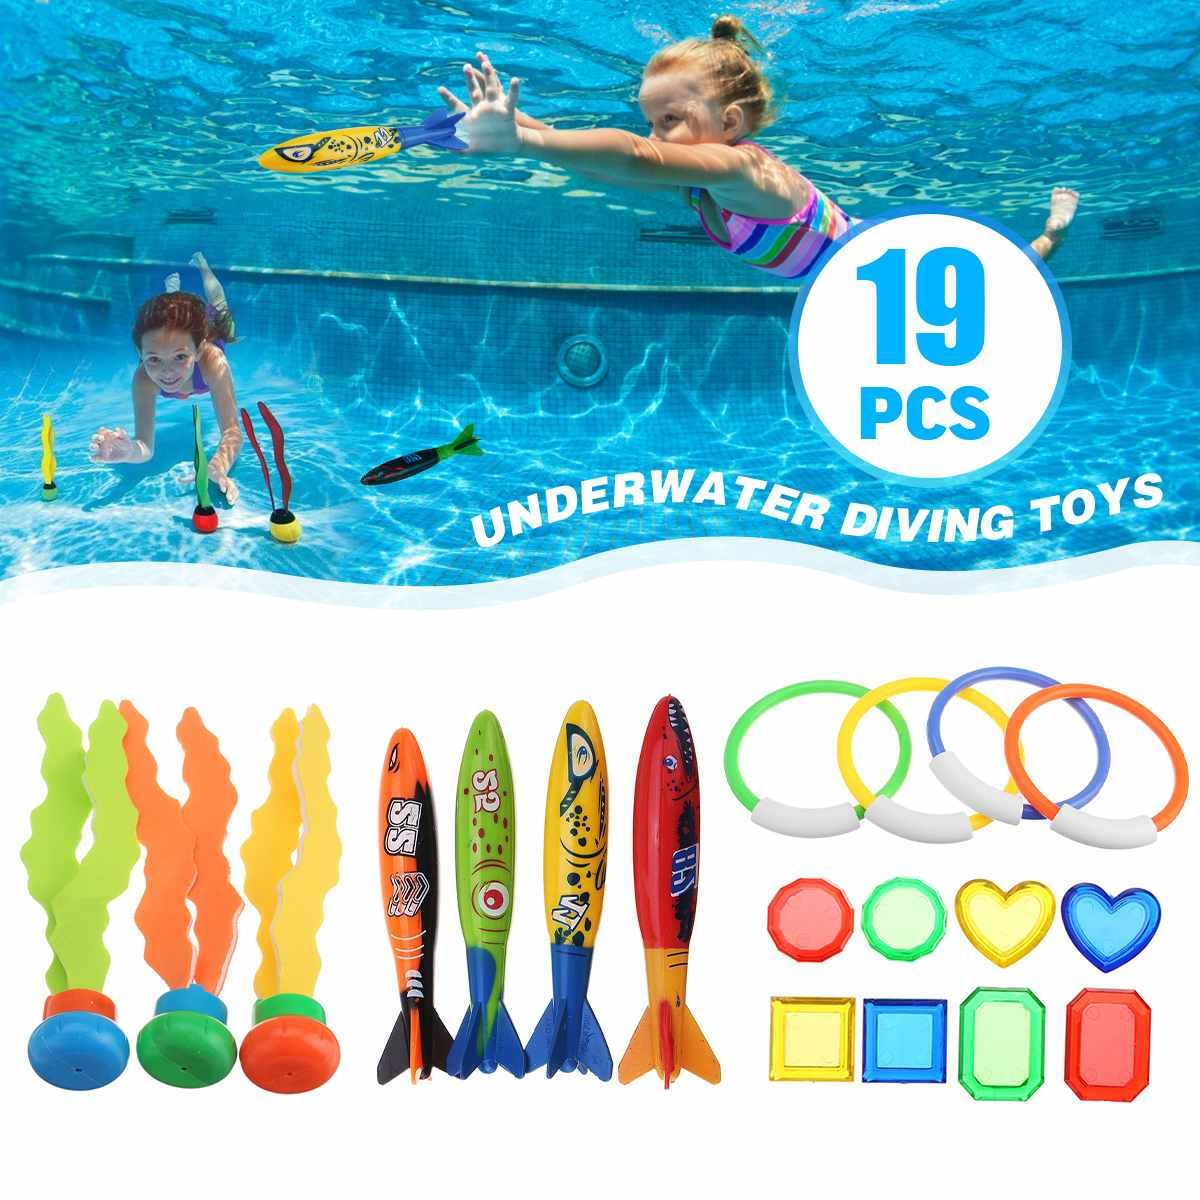 19PCS Kids Children Diving Ring Water Toys Pool Summer Swimming Water Fun Loaded Throwing Toys Underwater Beach Toy